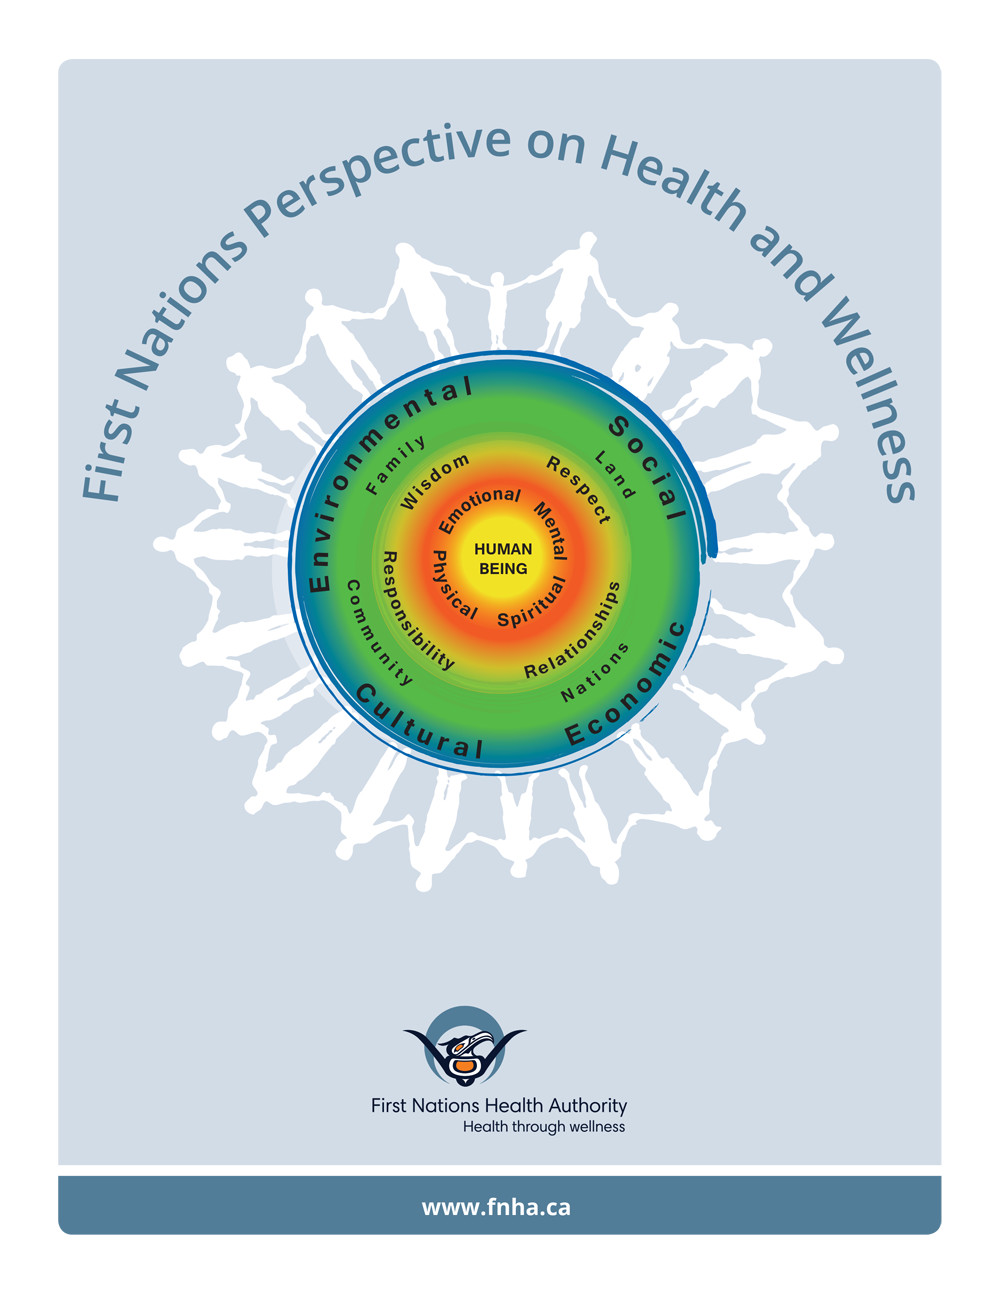 FNHA-First-Nations-Perspective-On-Health-And-Wellness.jpg